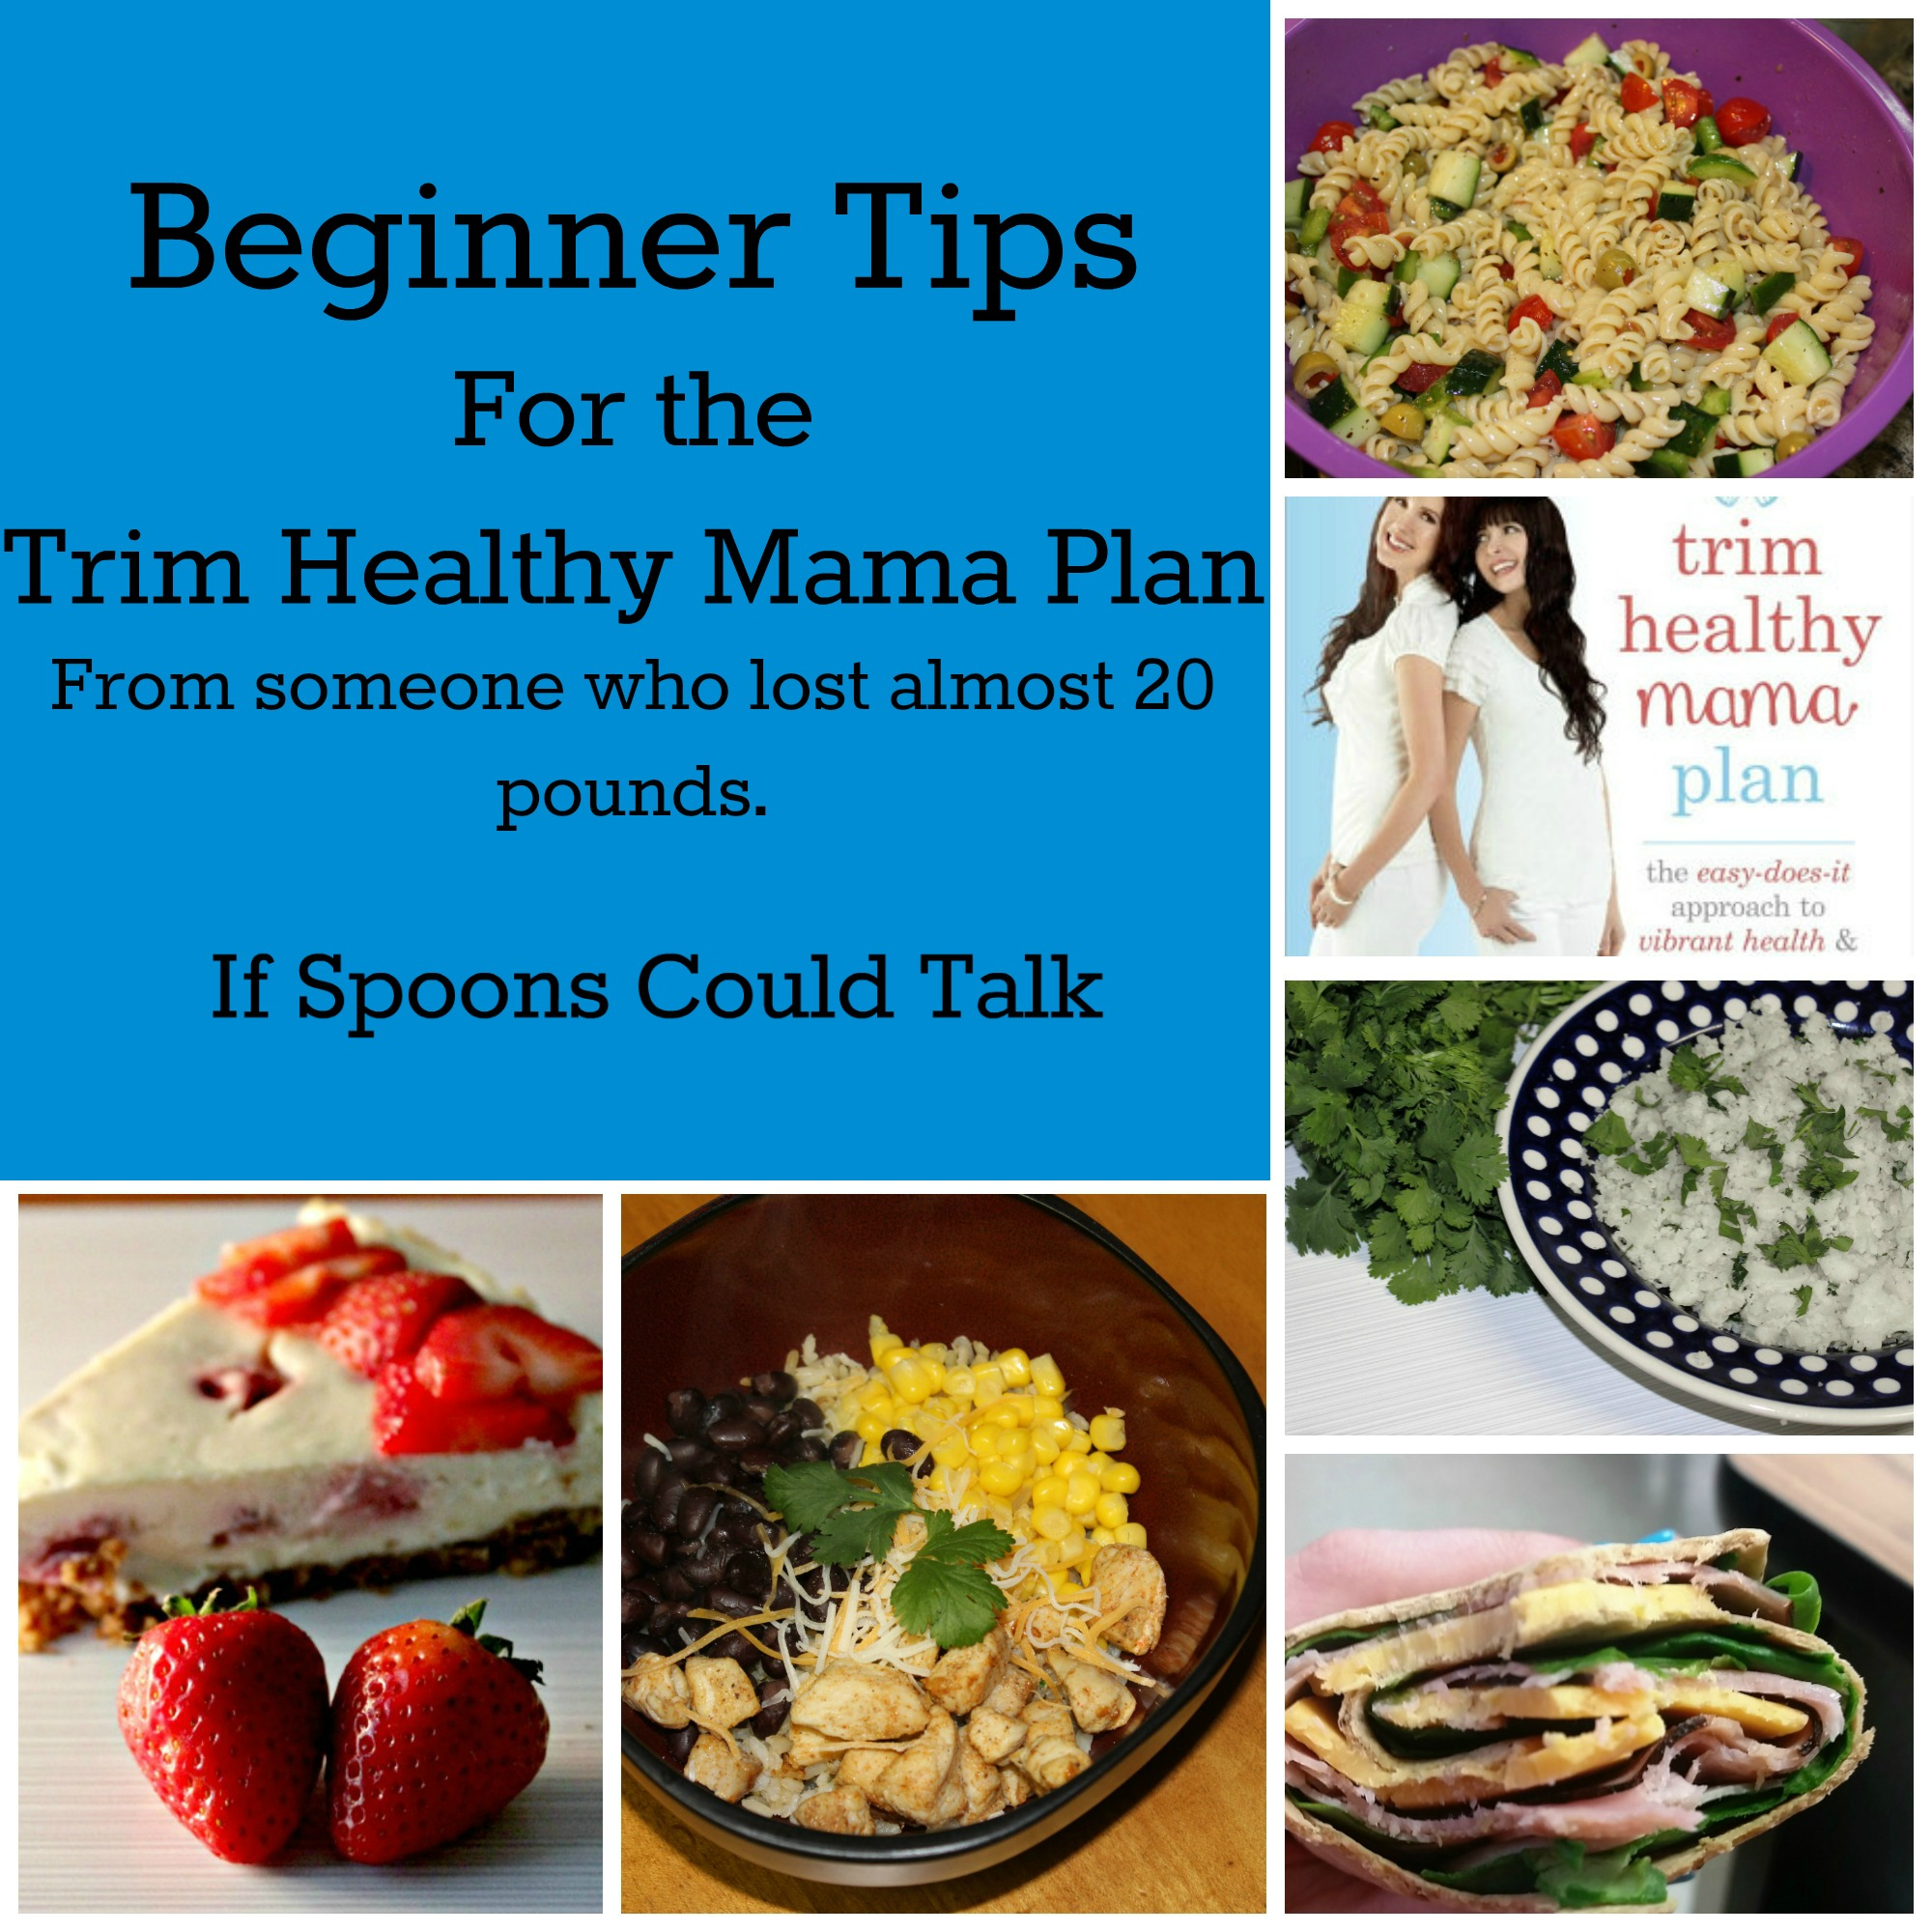 Trim healthy mama tips for beginners if spoons could talk there are multiple tips for beginning the trim healthy mama plan out there but everyone is different and what works for one person may not work for another forumfinder Choice Image